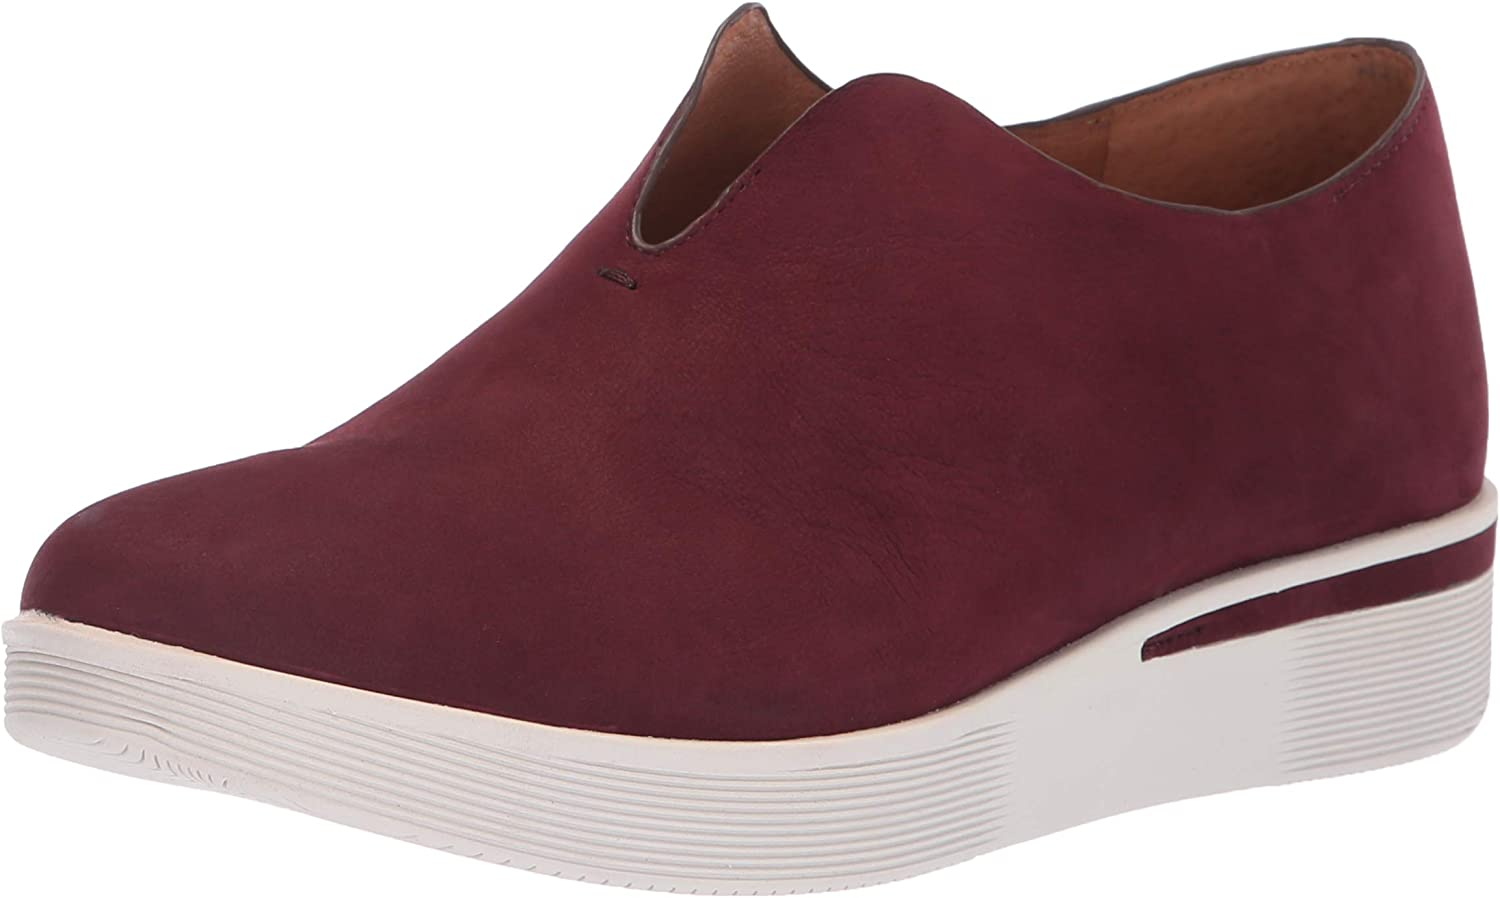 Gentle Souls Womens Hanna Slip on Sneaker Sneaker